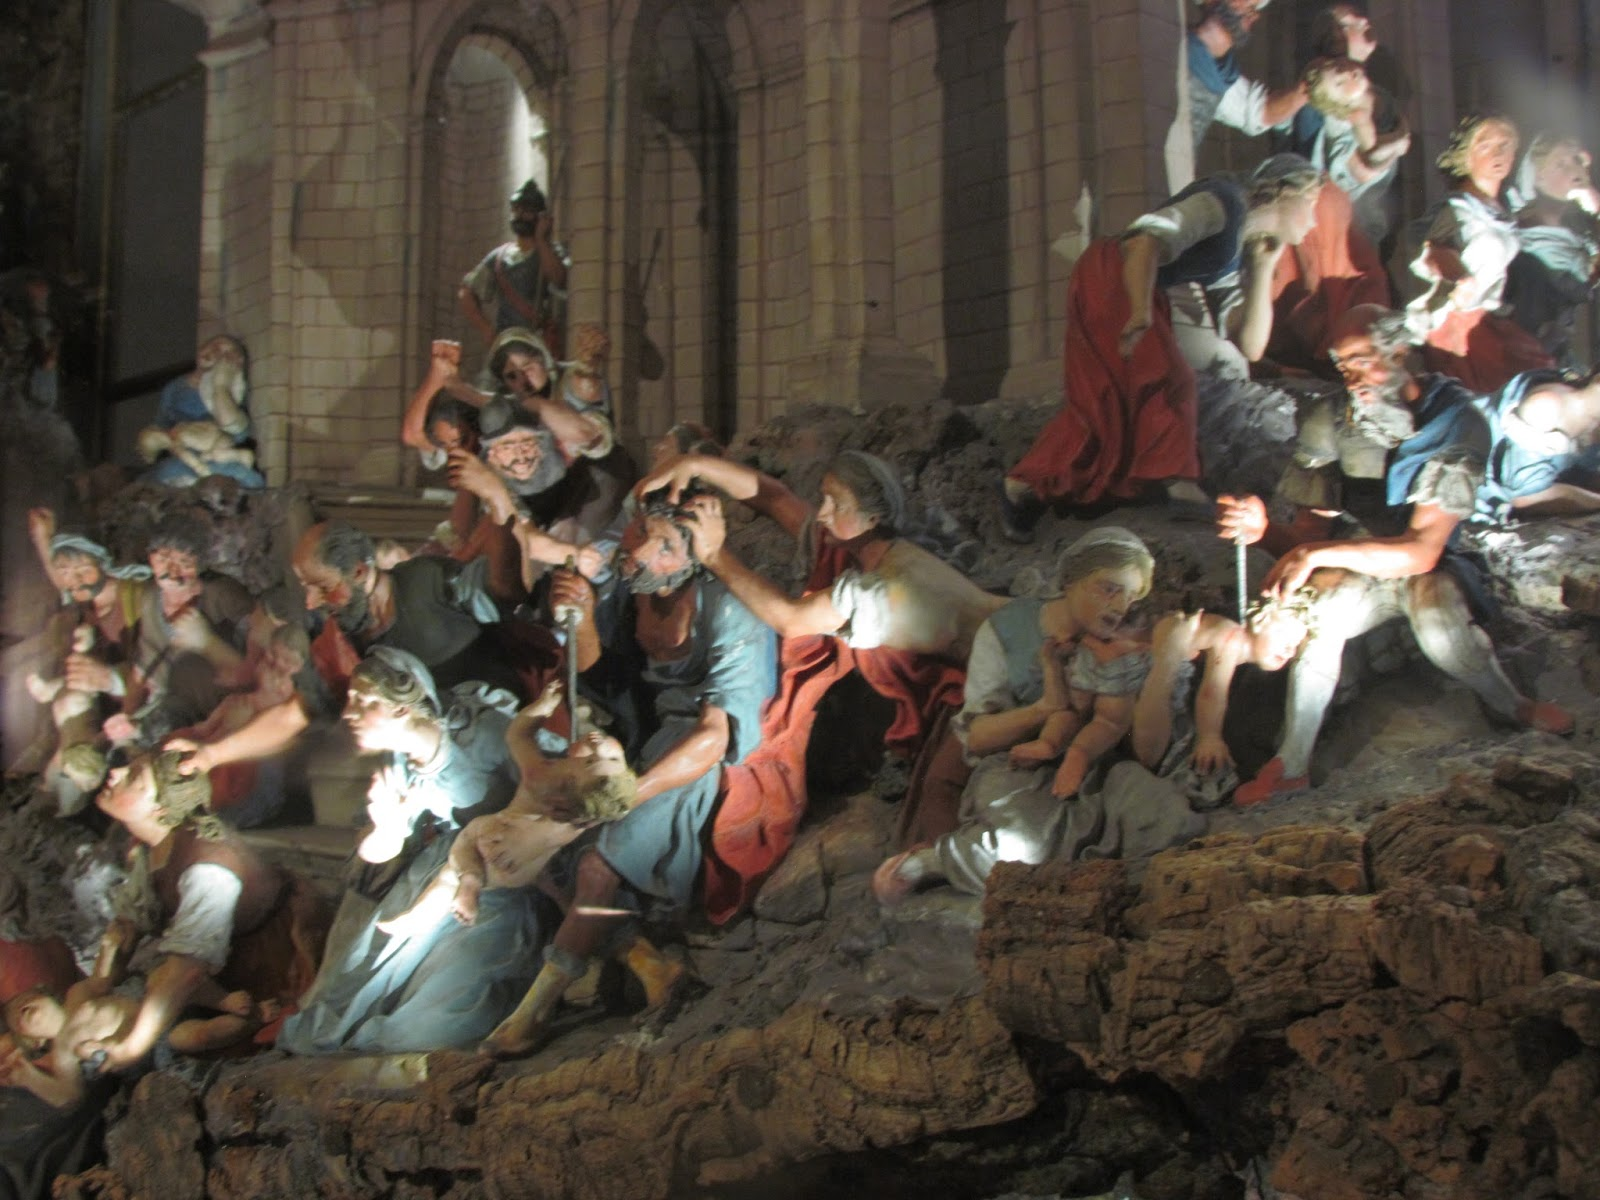 An 18th Century nativity in Portugal depicts the slaughter of the innocents.